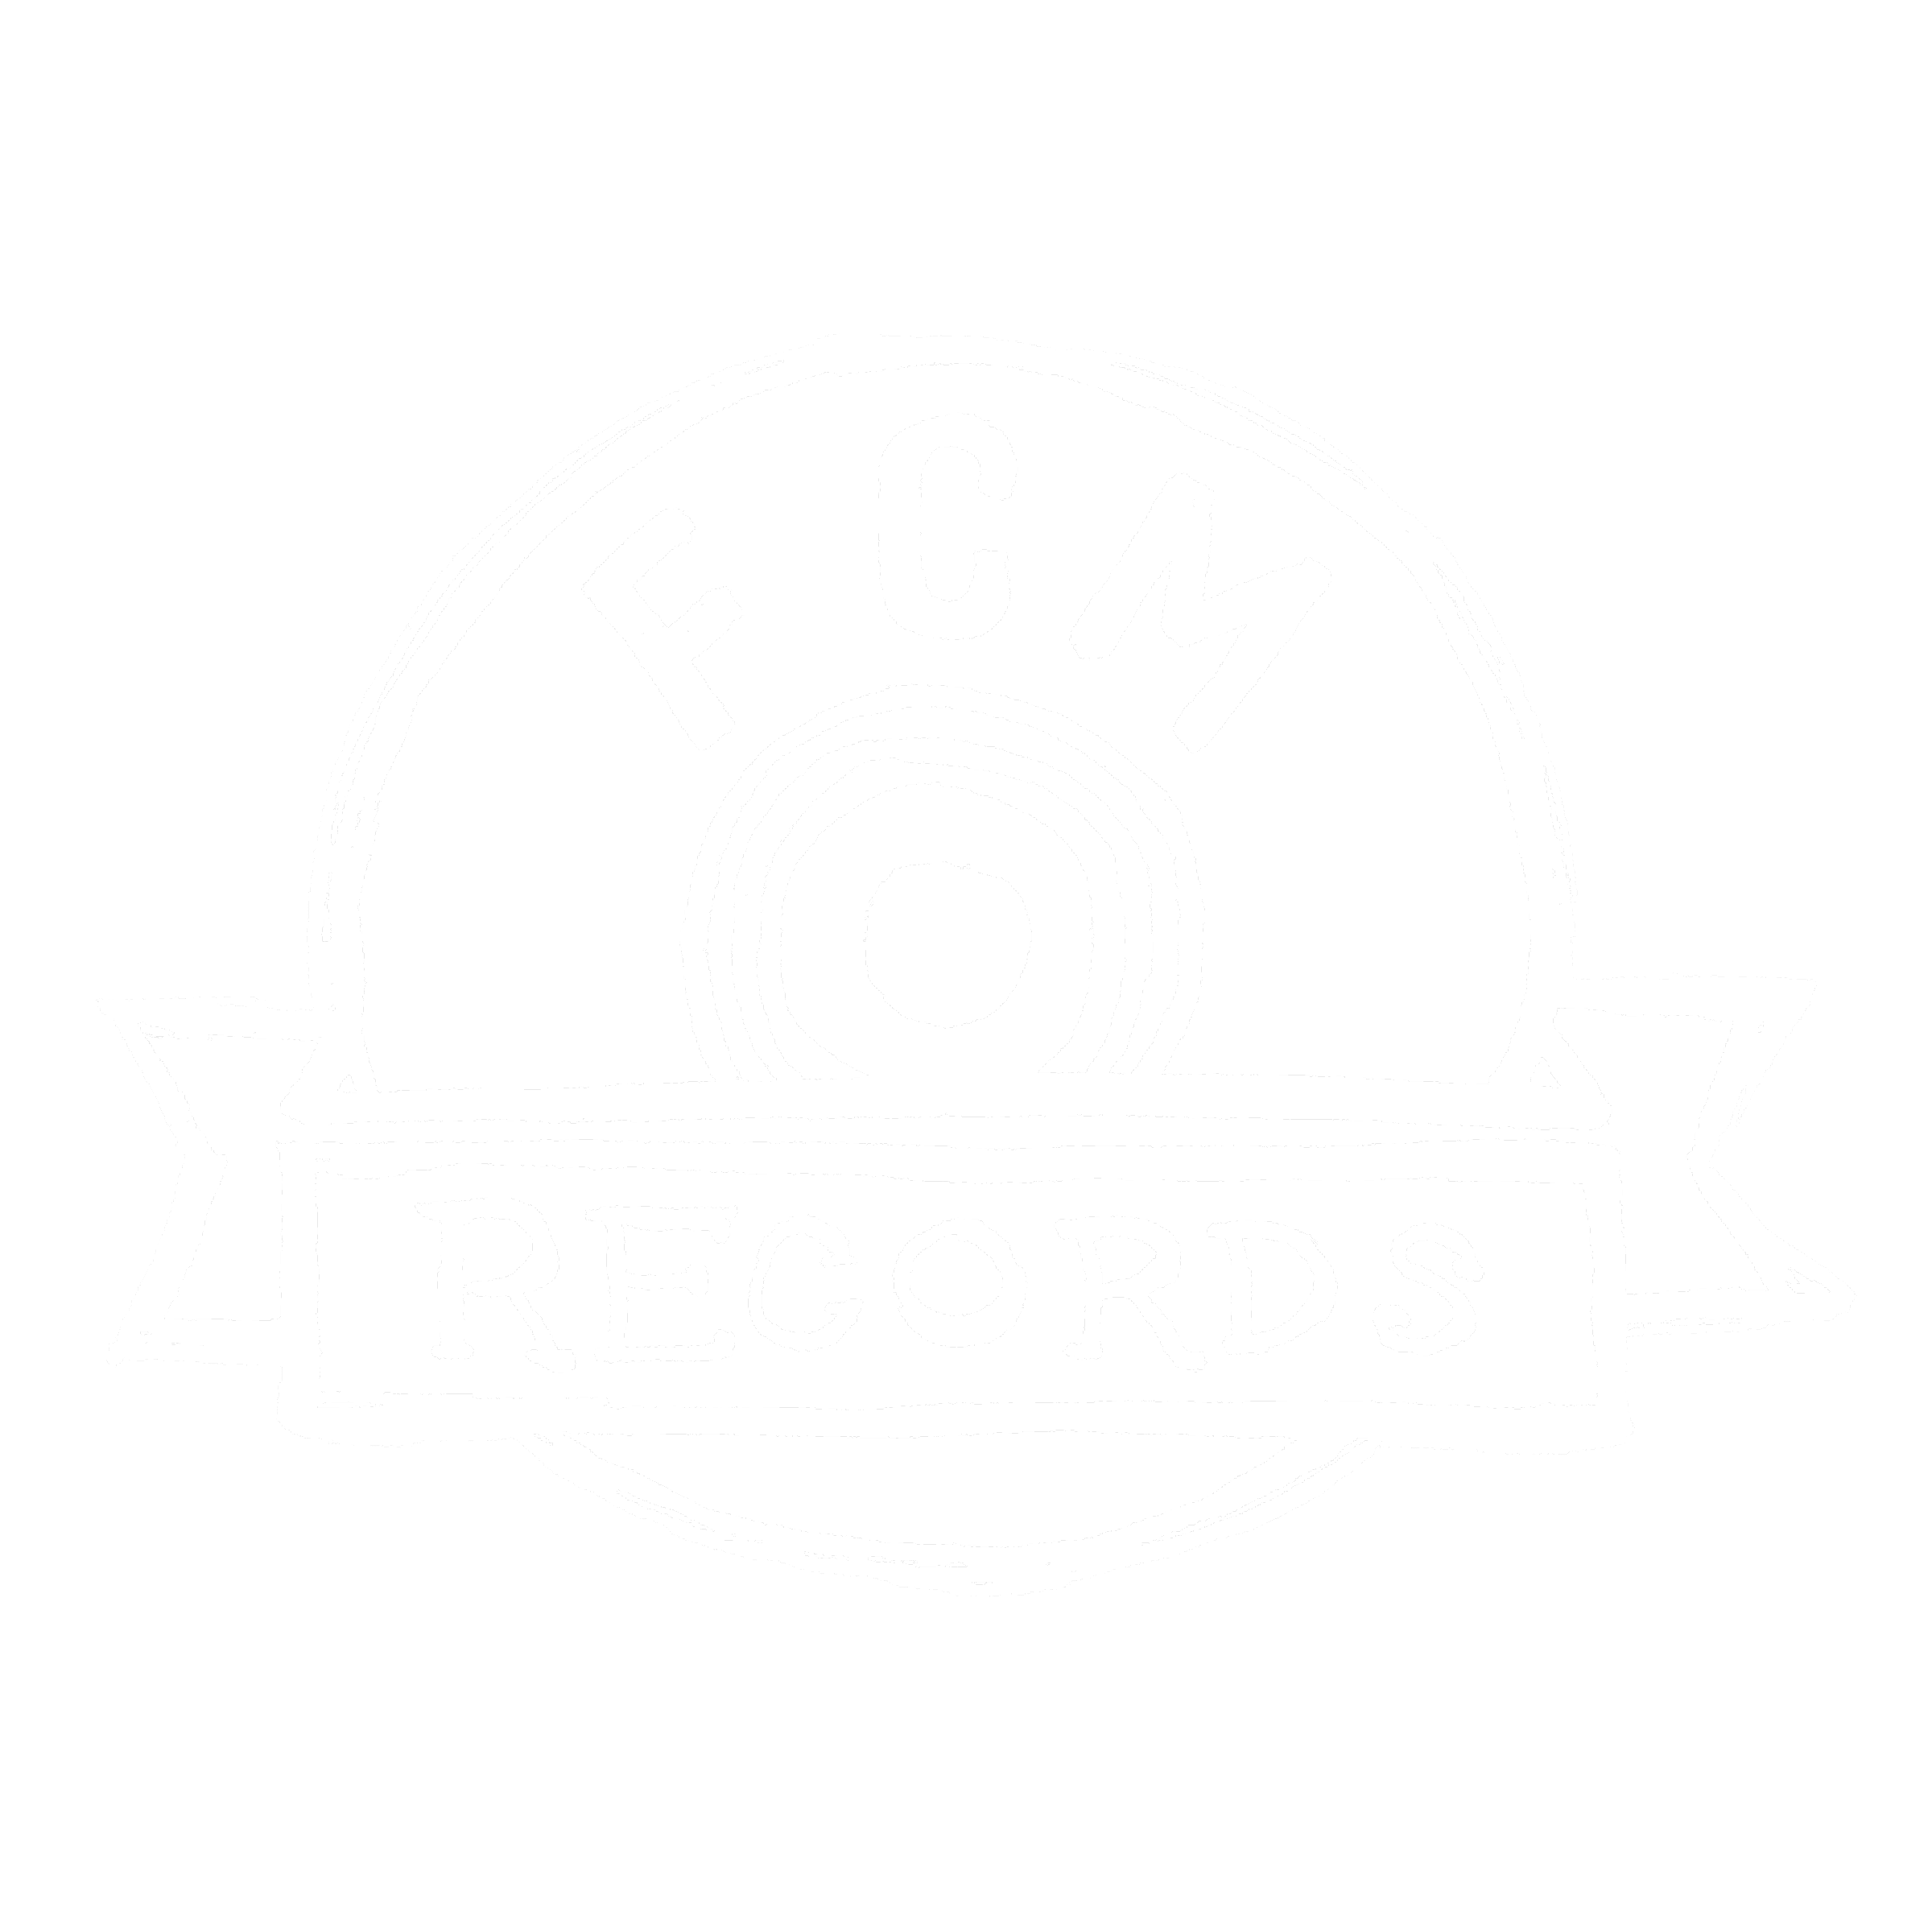 FCM Record Label